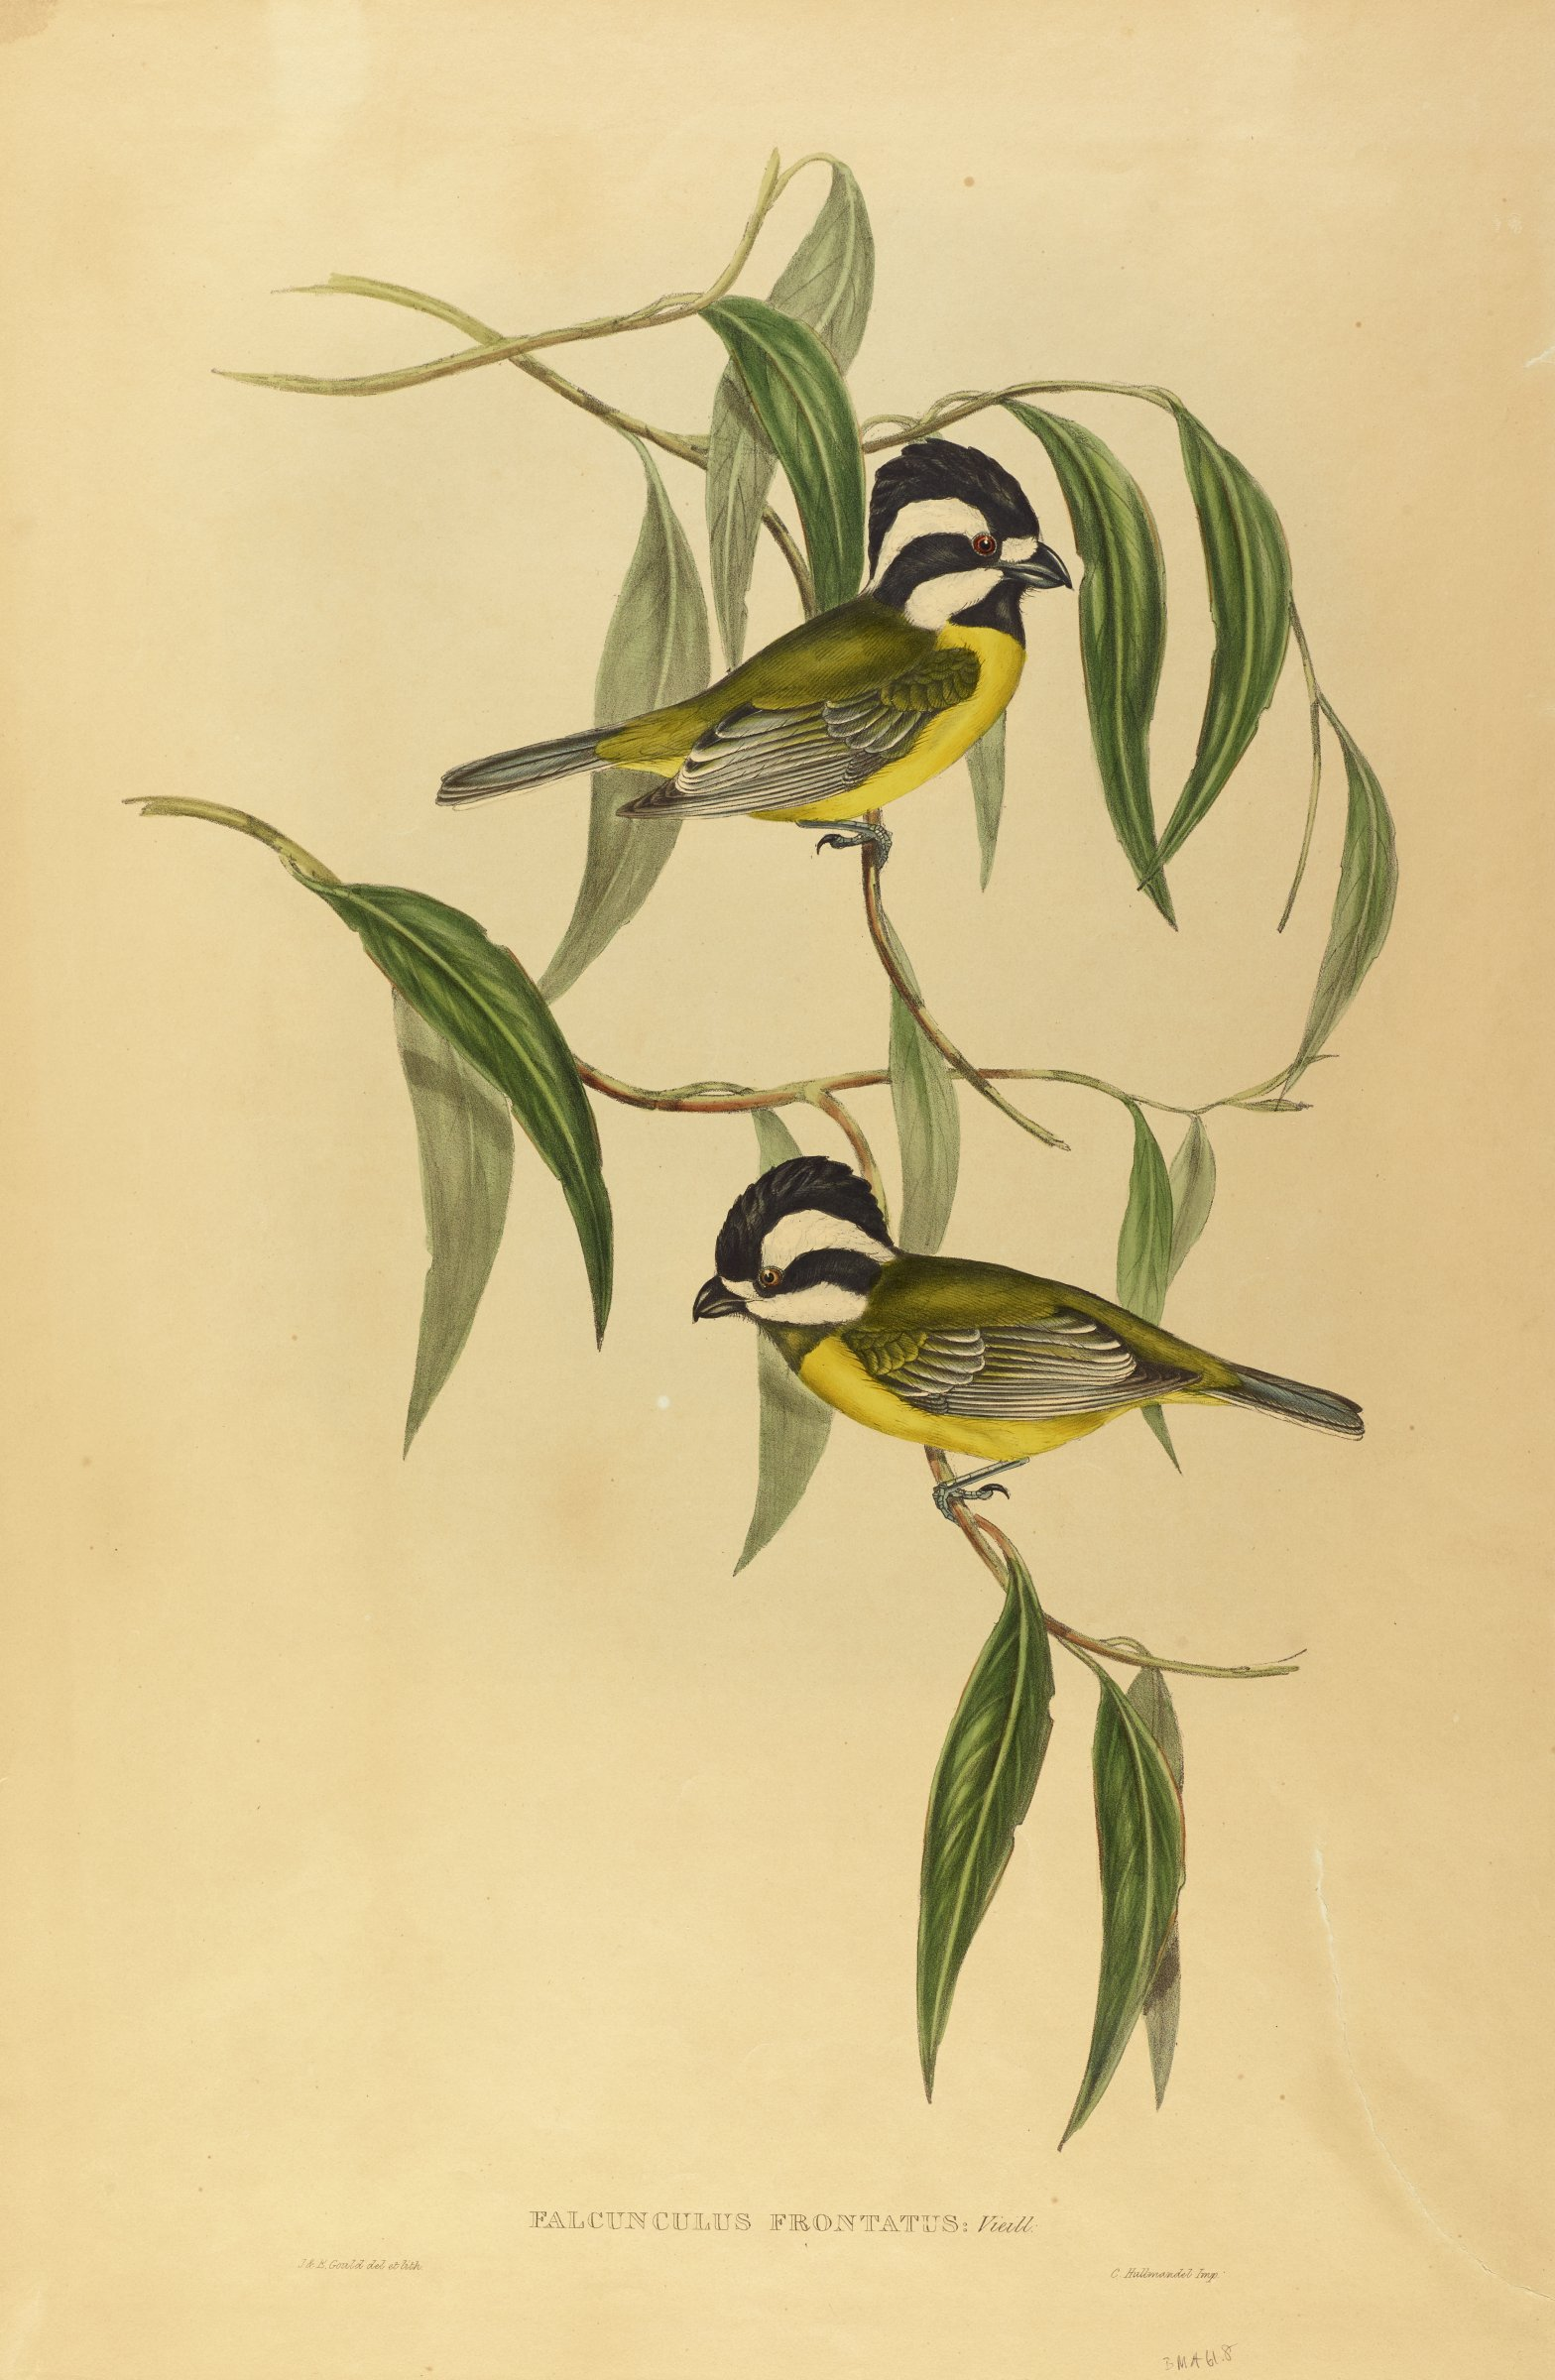 Two small yellow, black, and white birds sit on thin branches that hold thin draping leaves.